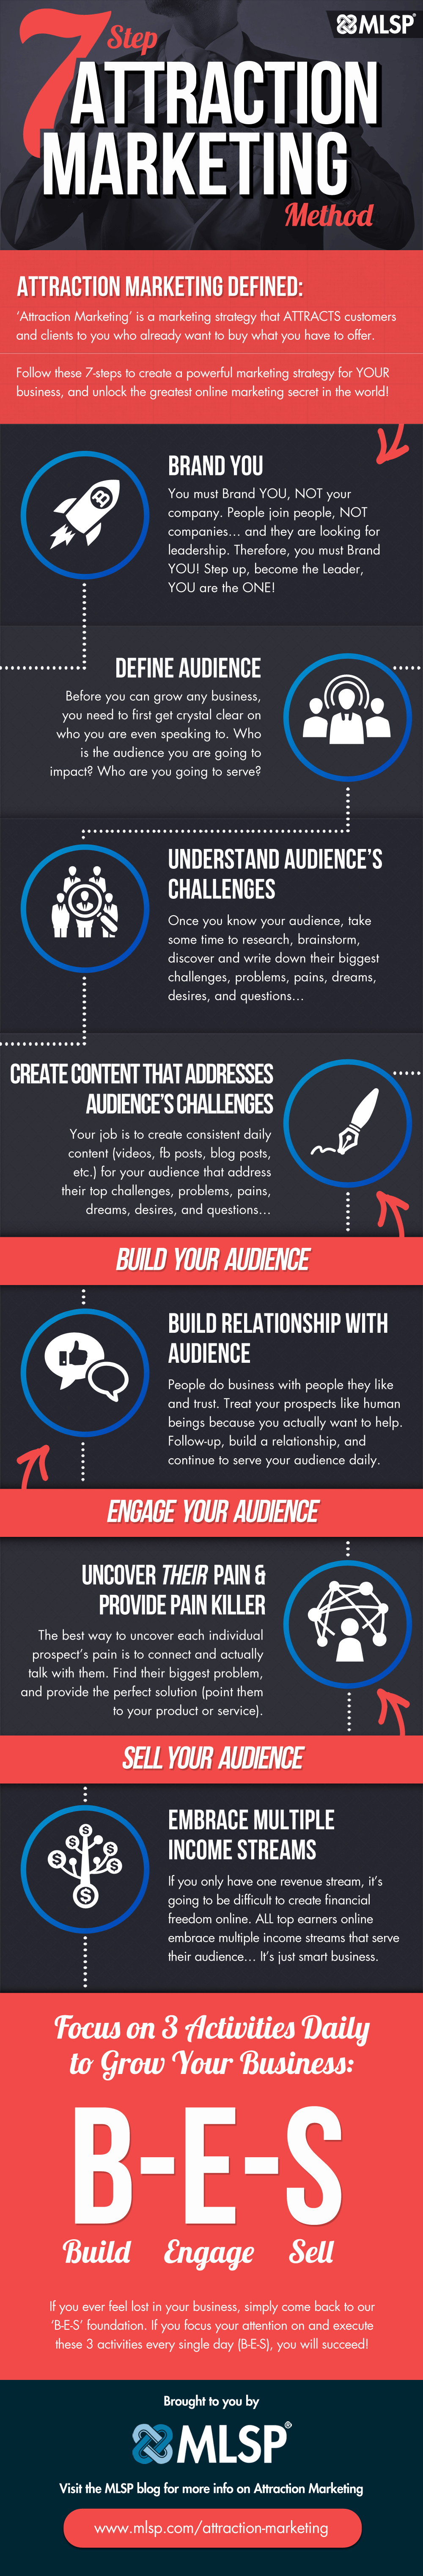 MLSP 7 Step Attraction Marketing Method Infographic